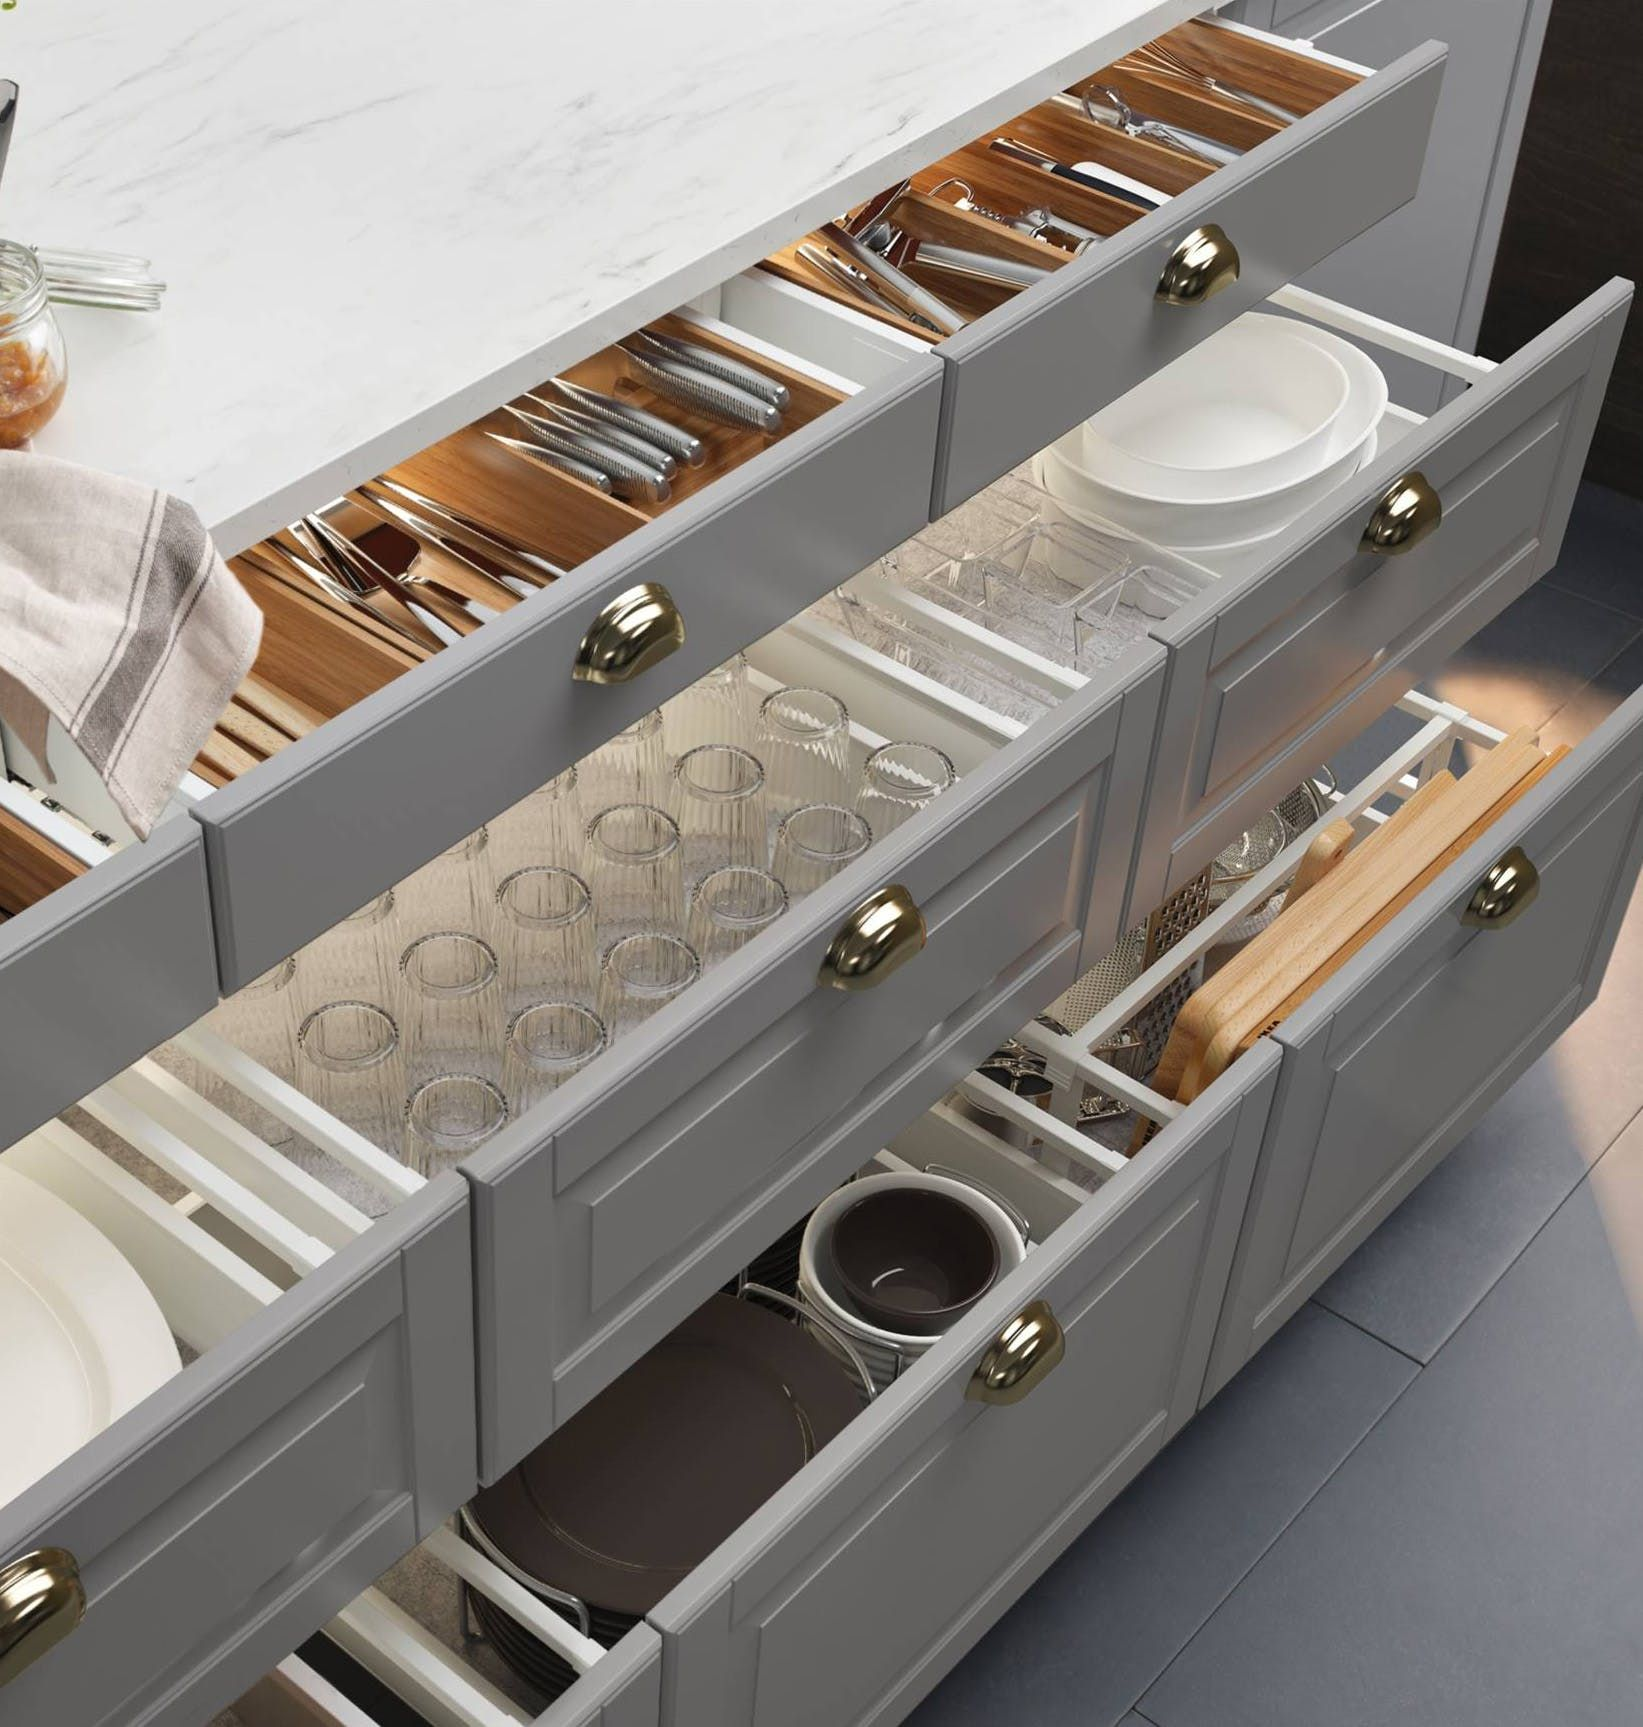 Kitchen Cabinet Drawer With Top: Why You Should Choose Drawers Over Cabinets In Your